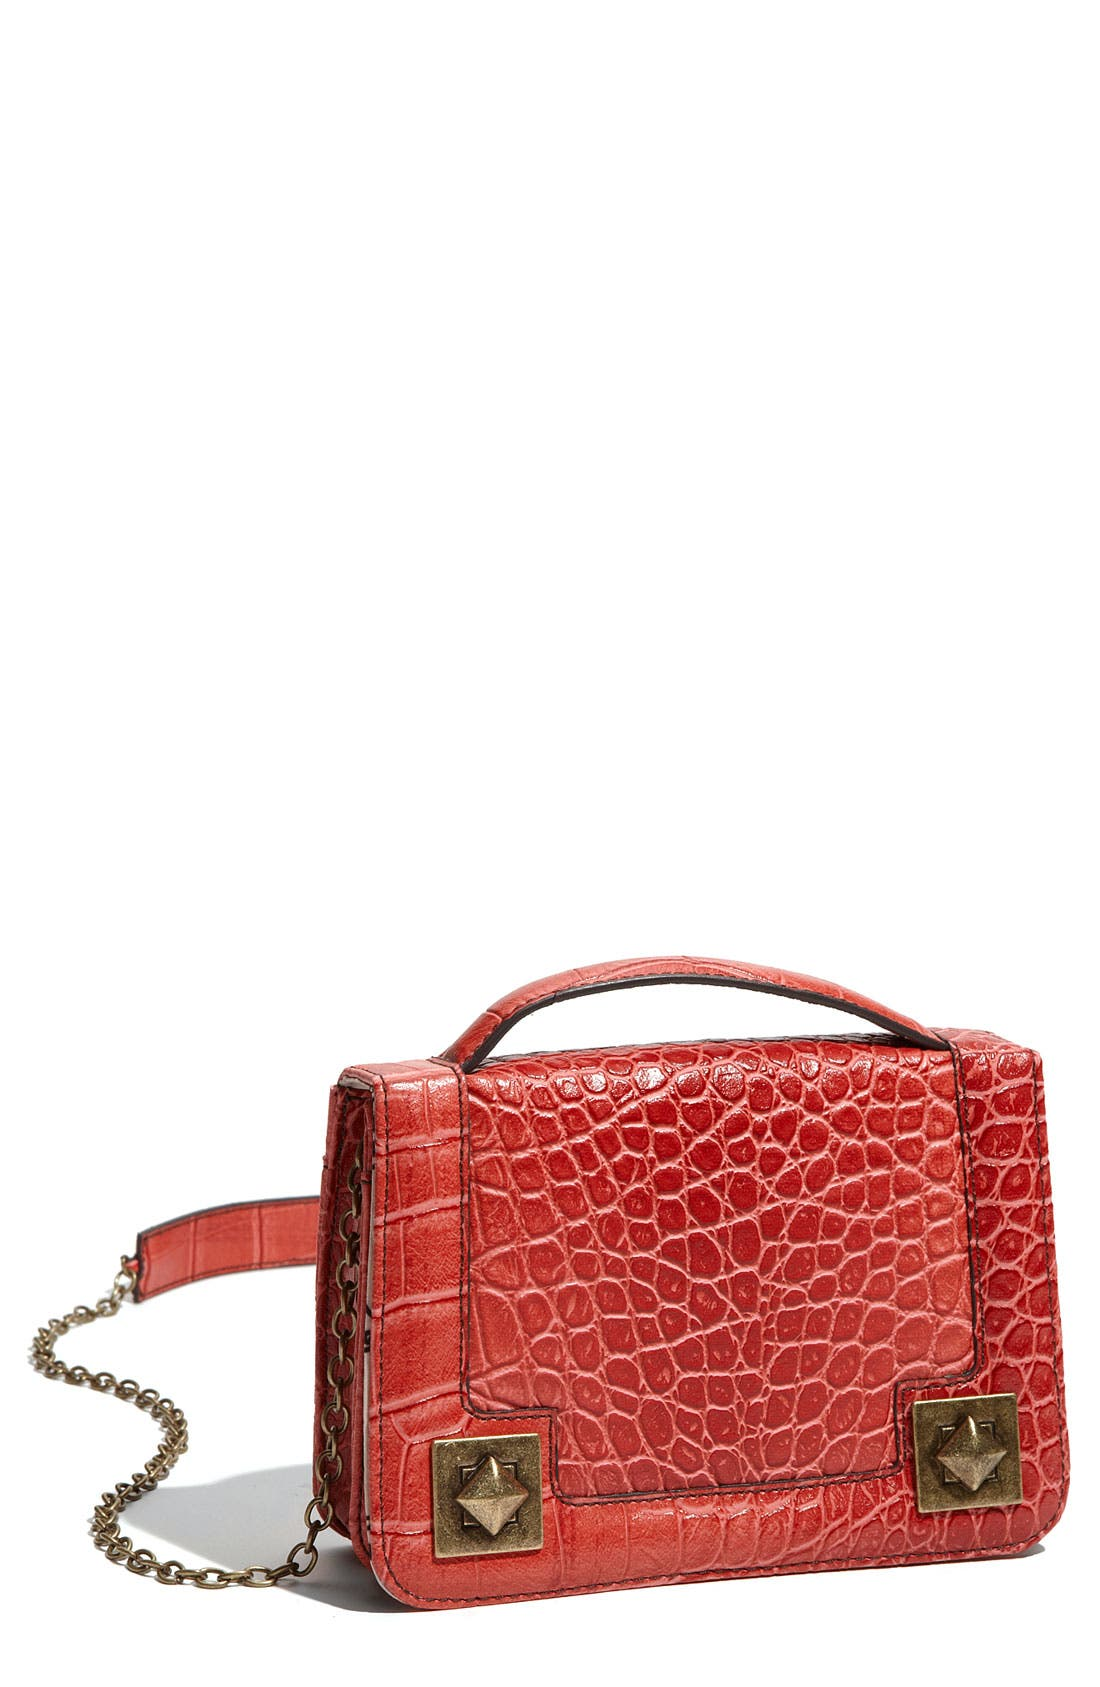 Main Image - Jessica Simpson 'Bella' Faux Leather Crossbody Bag